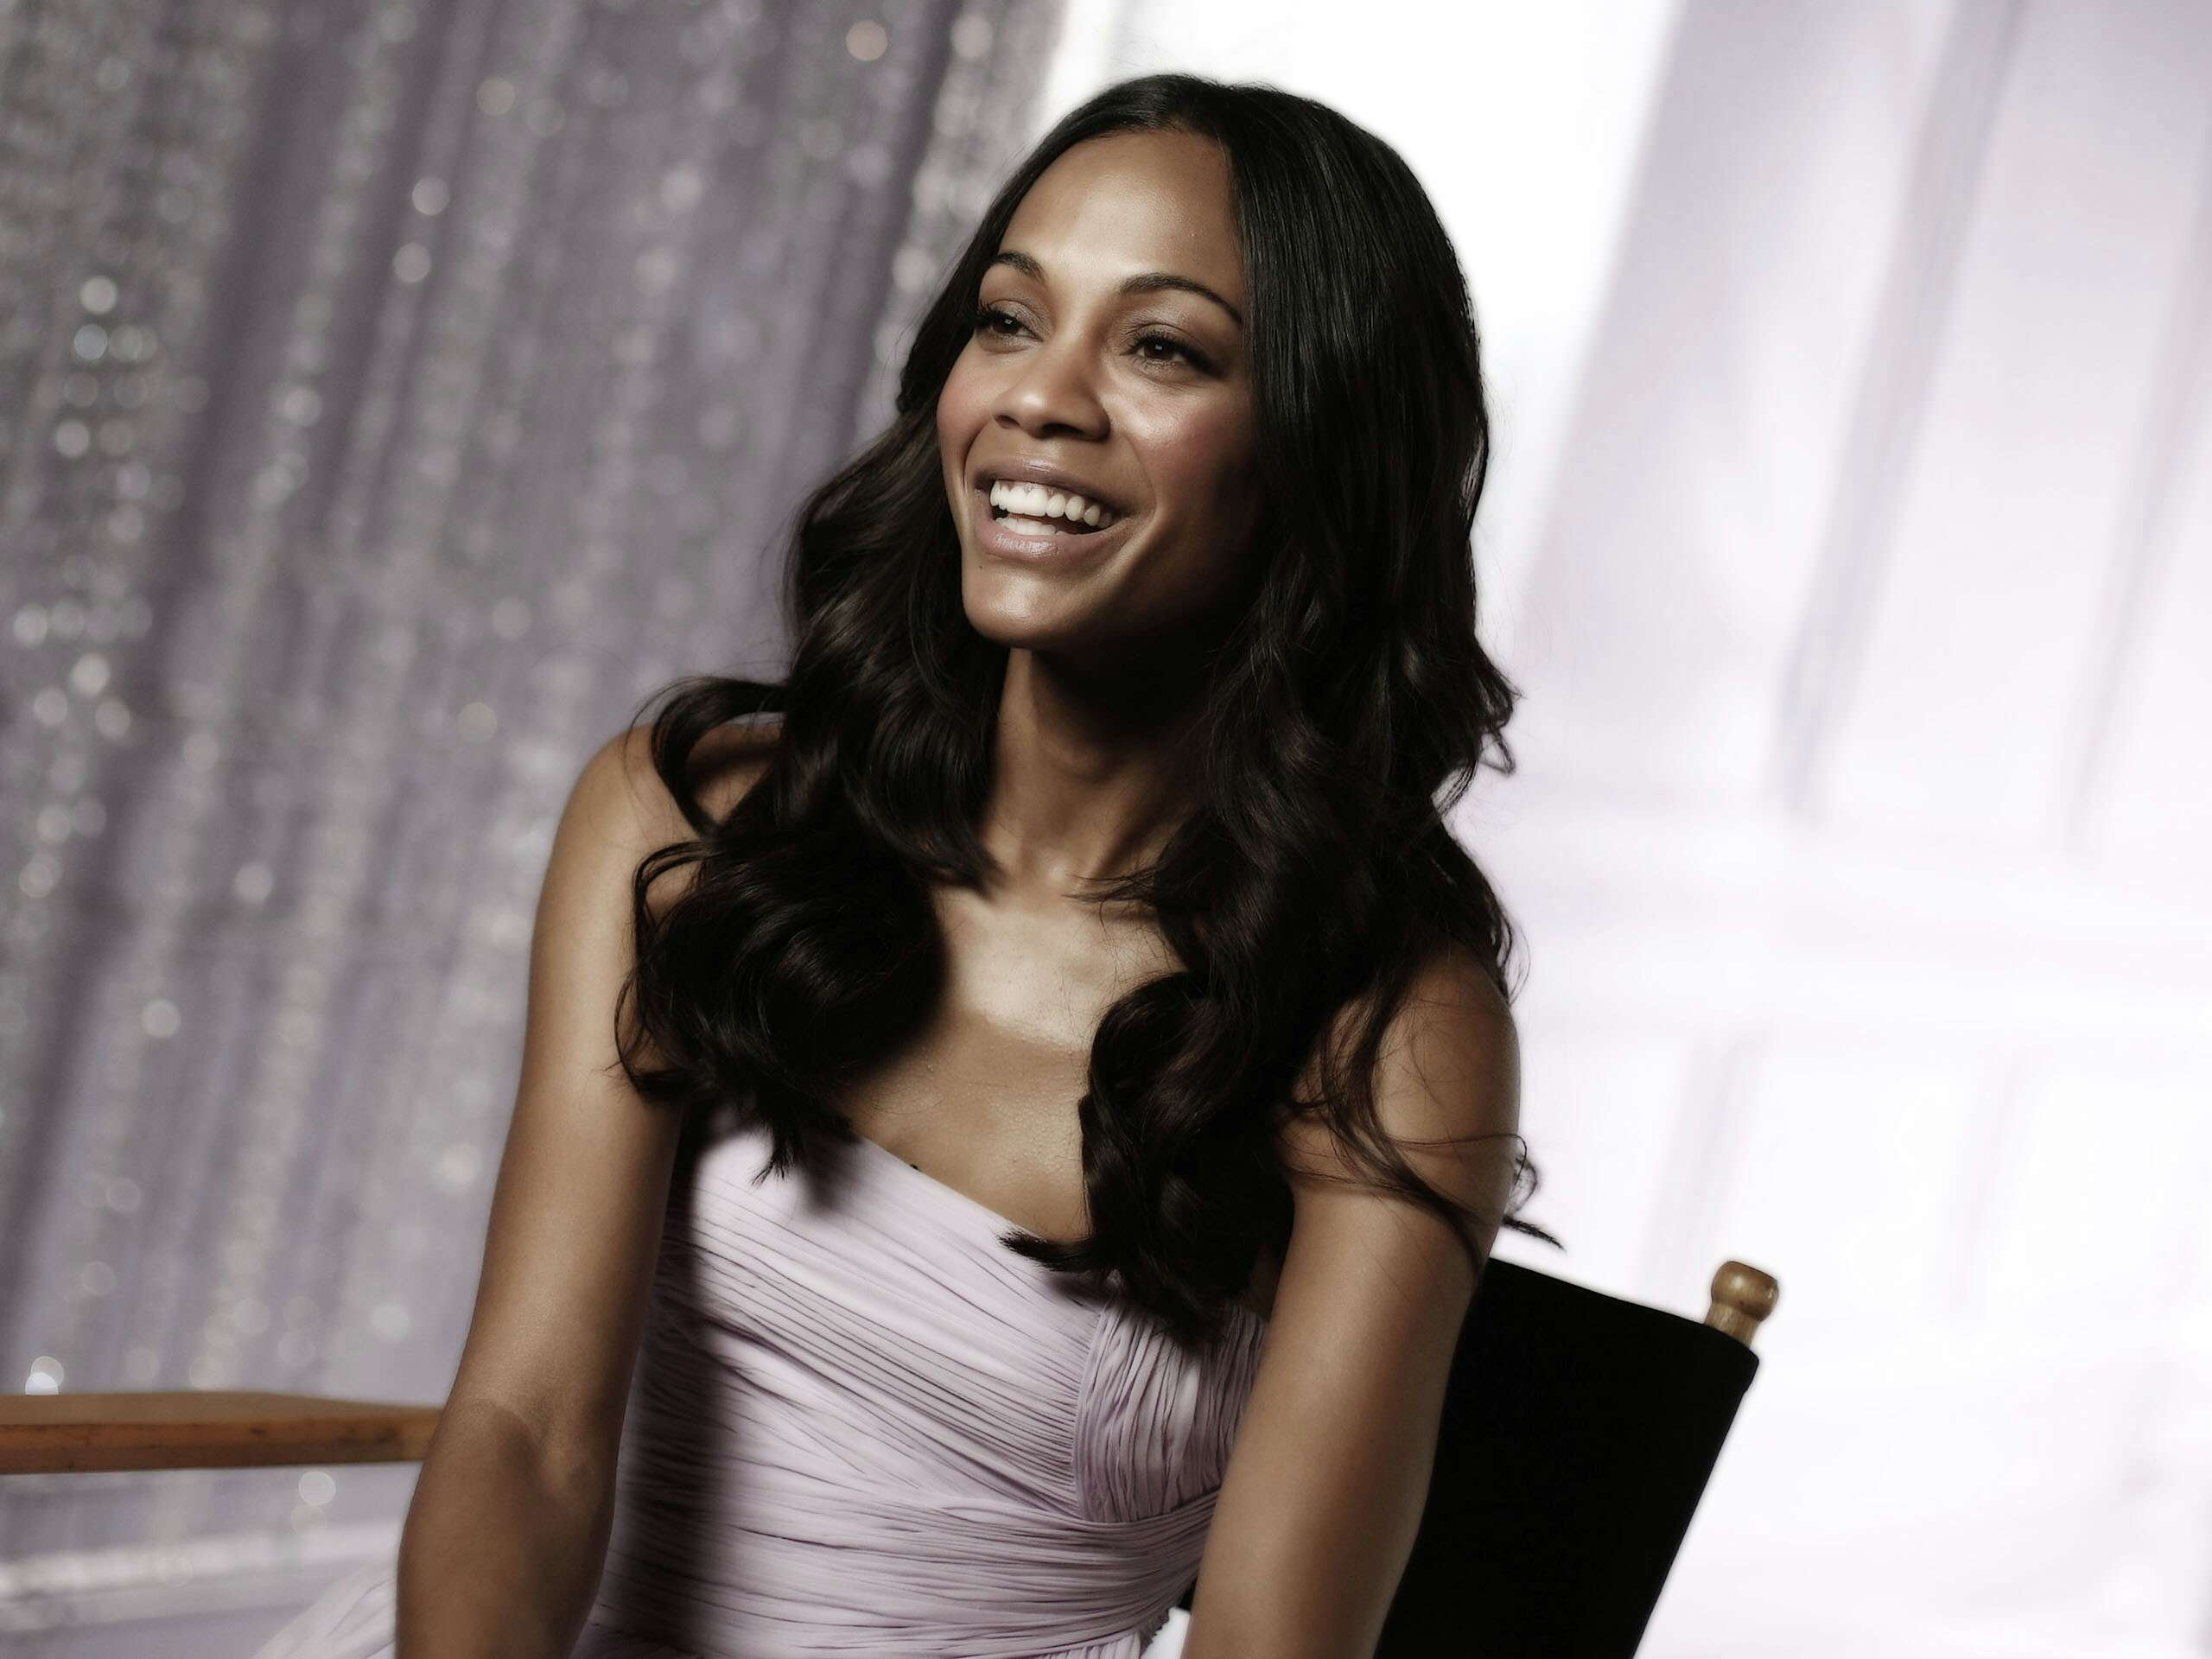 happy zoe saldana wallpaper 51950